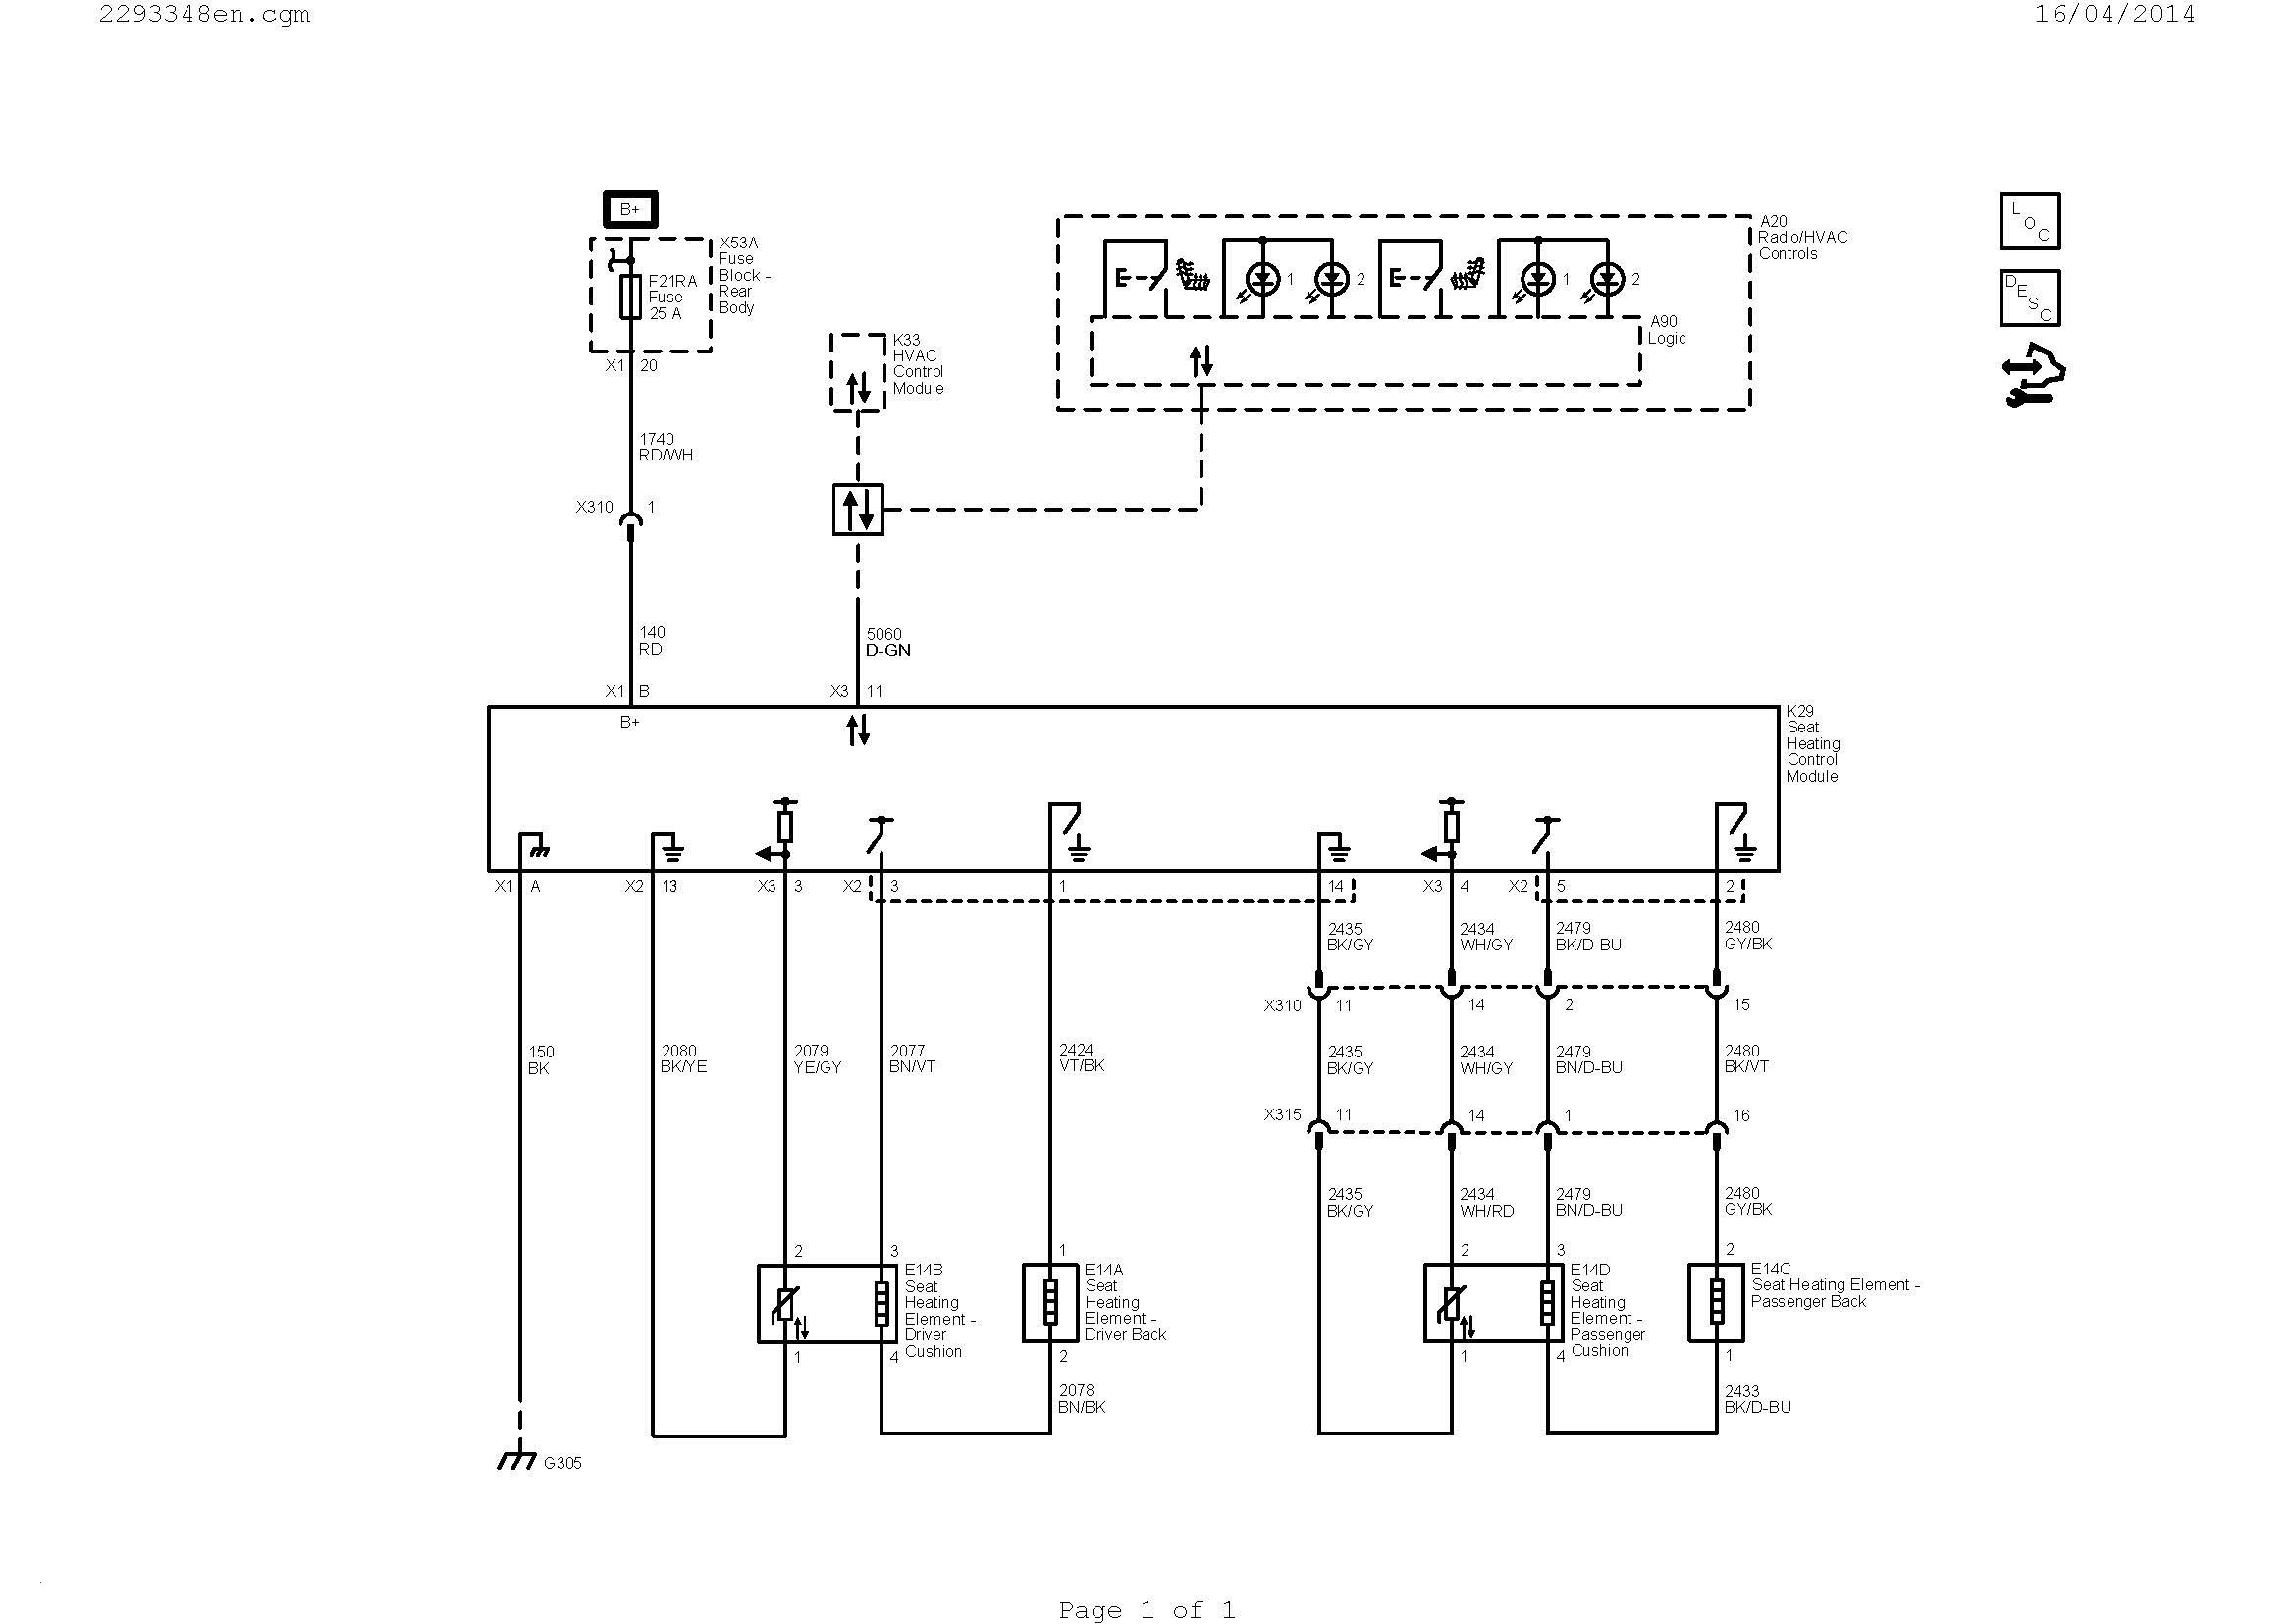 Electrical Diagrams for Cars Automotive Wiring Diagrams Schaferforcongressfo Of Electrical Diagrams for Cars